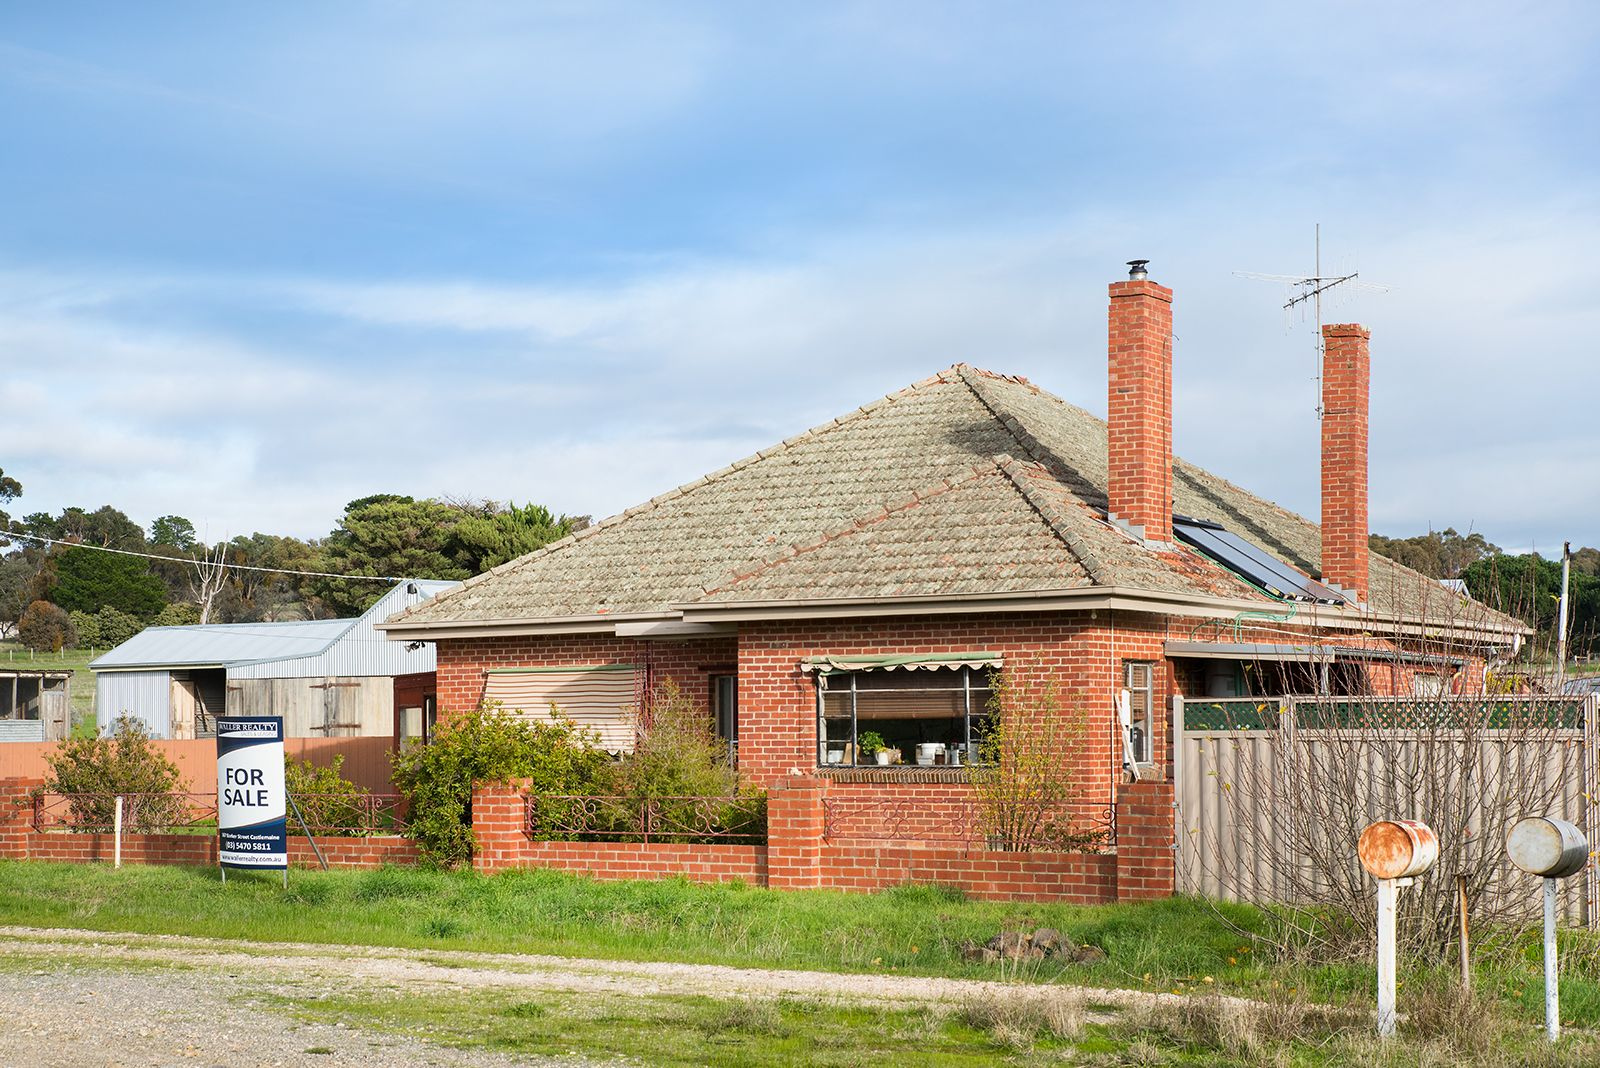 2000 Creswick-Newstead Road, Campbelltown VIC 3364, Image 1